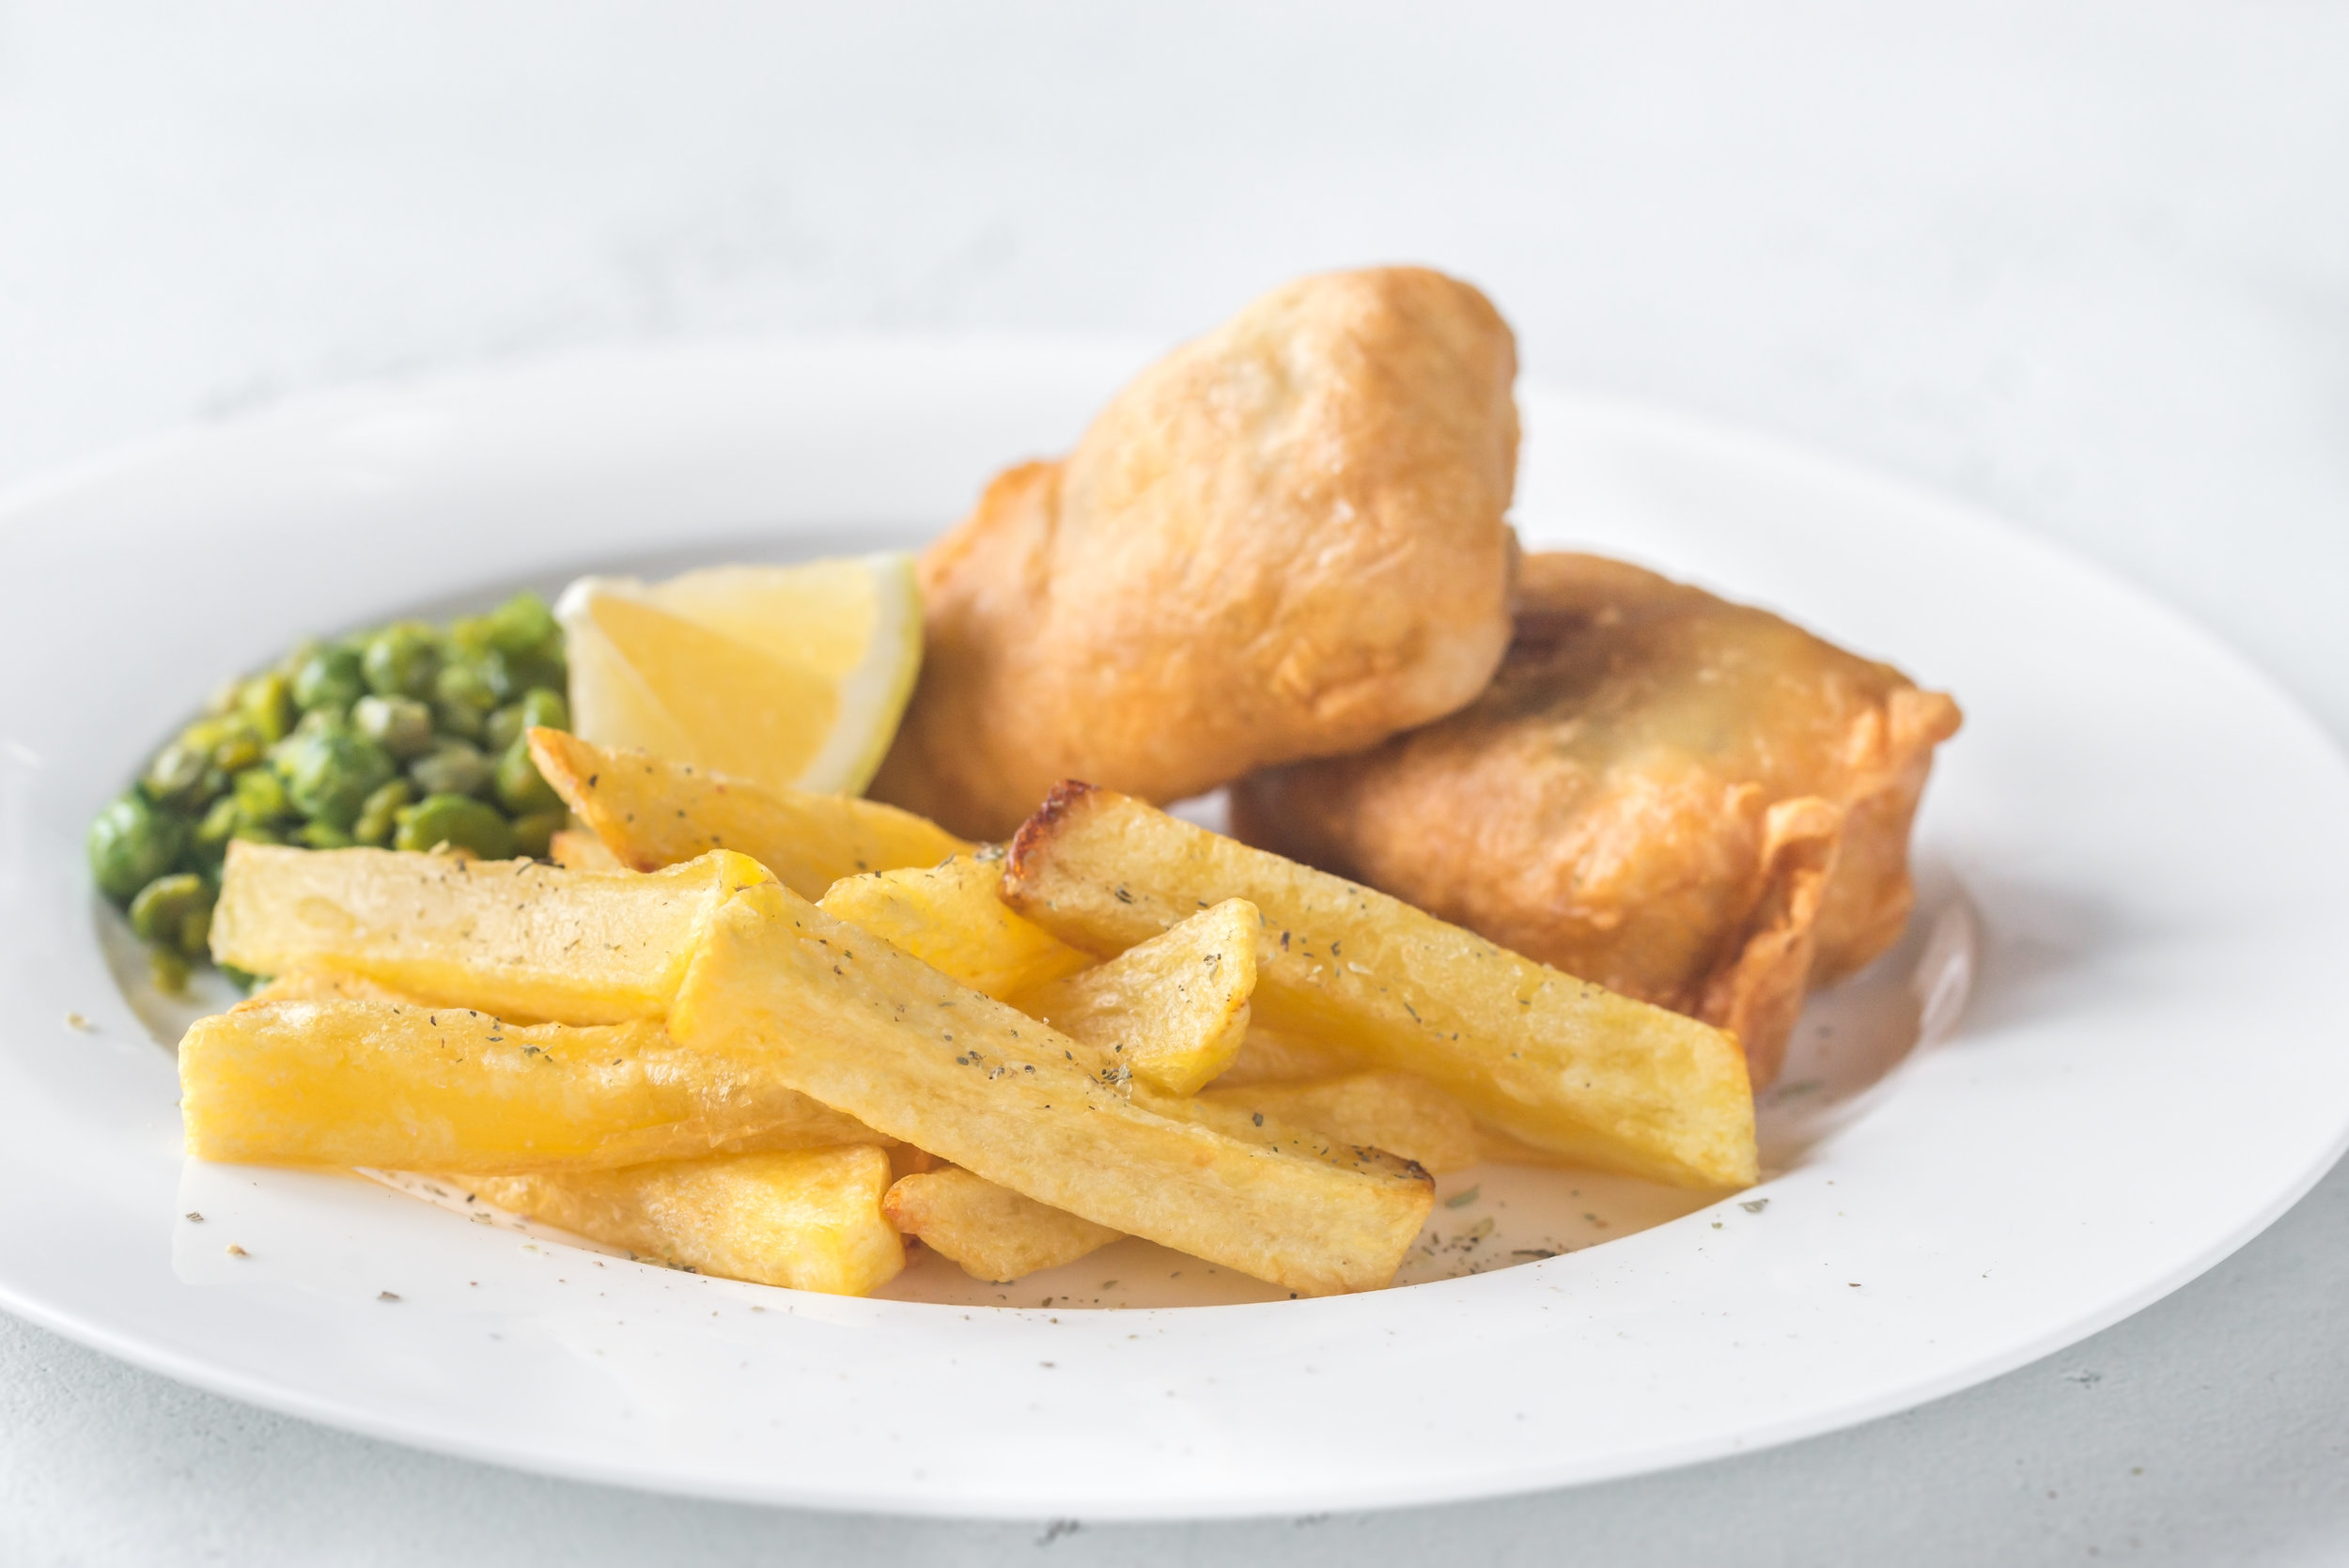 portion-of-fish-and-chips-V54LAUF.jpg